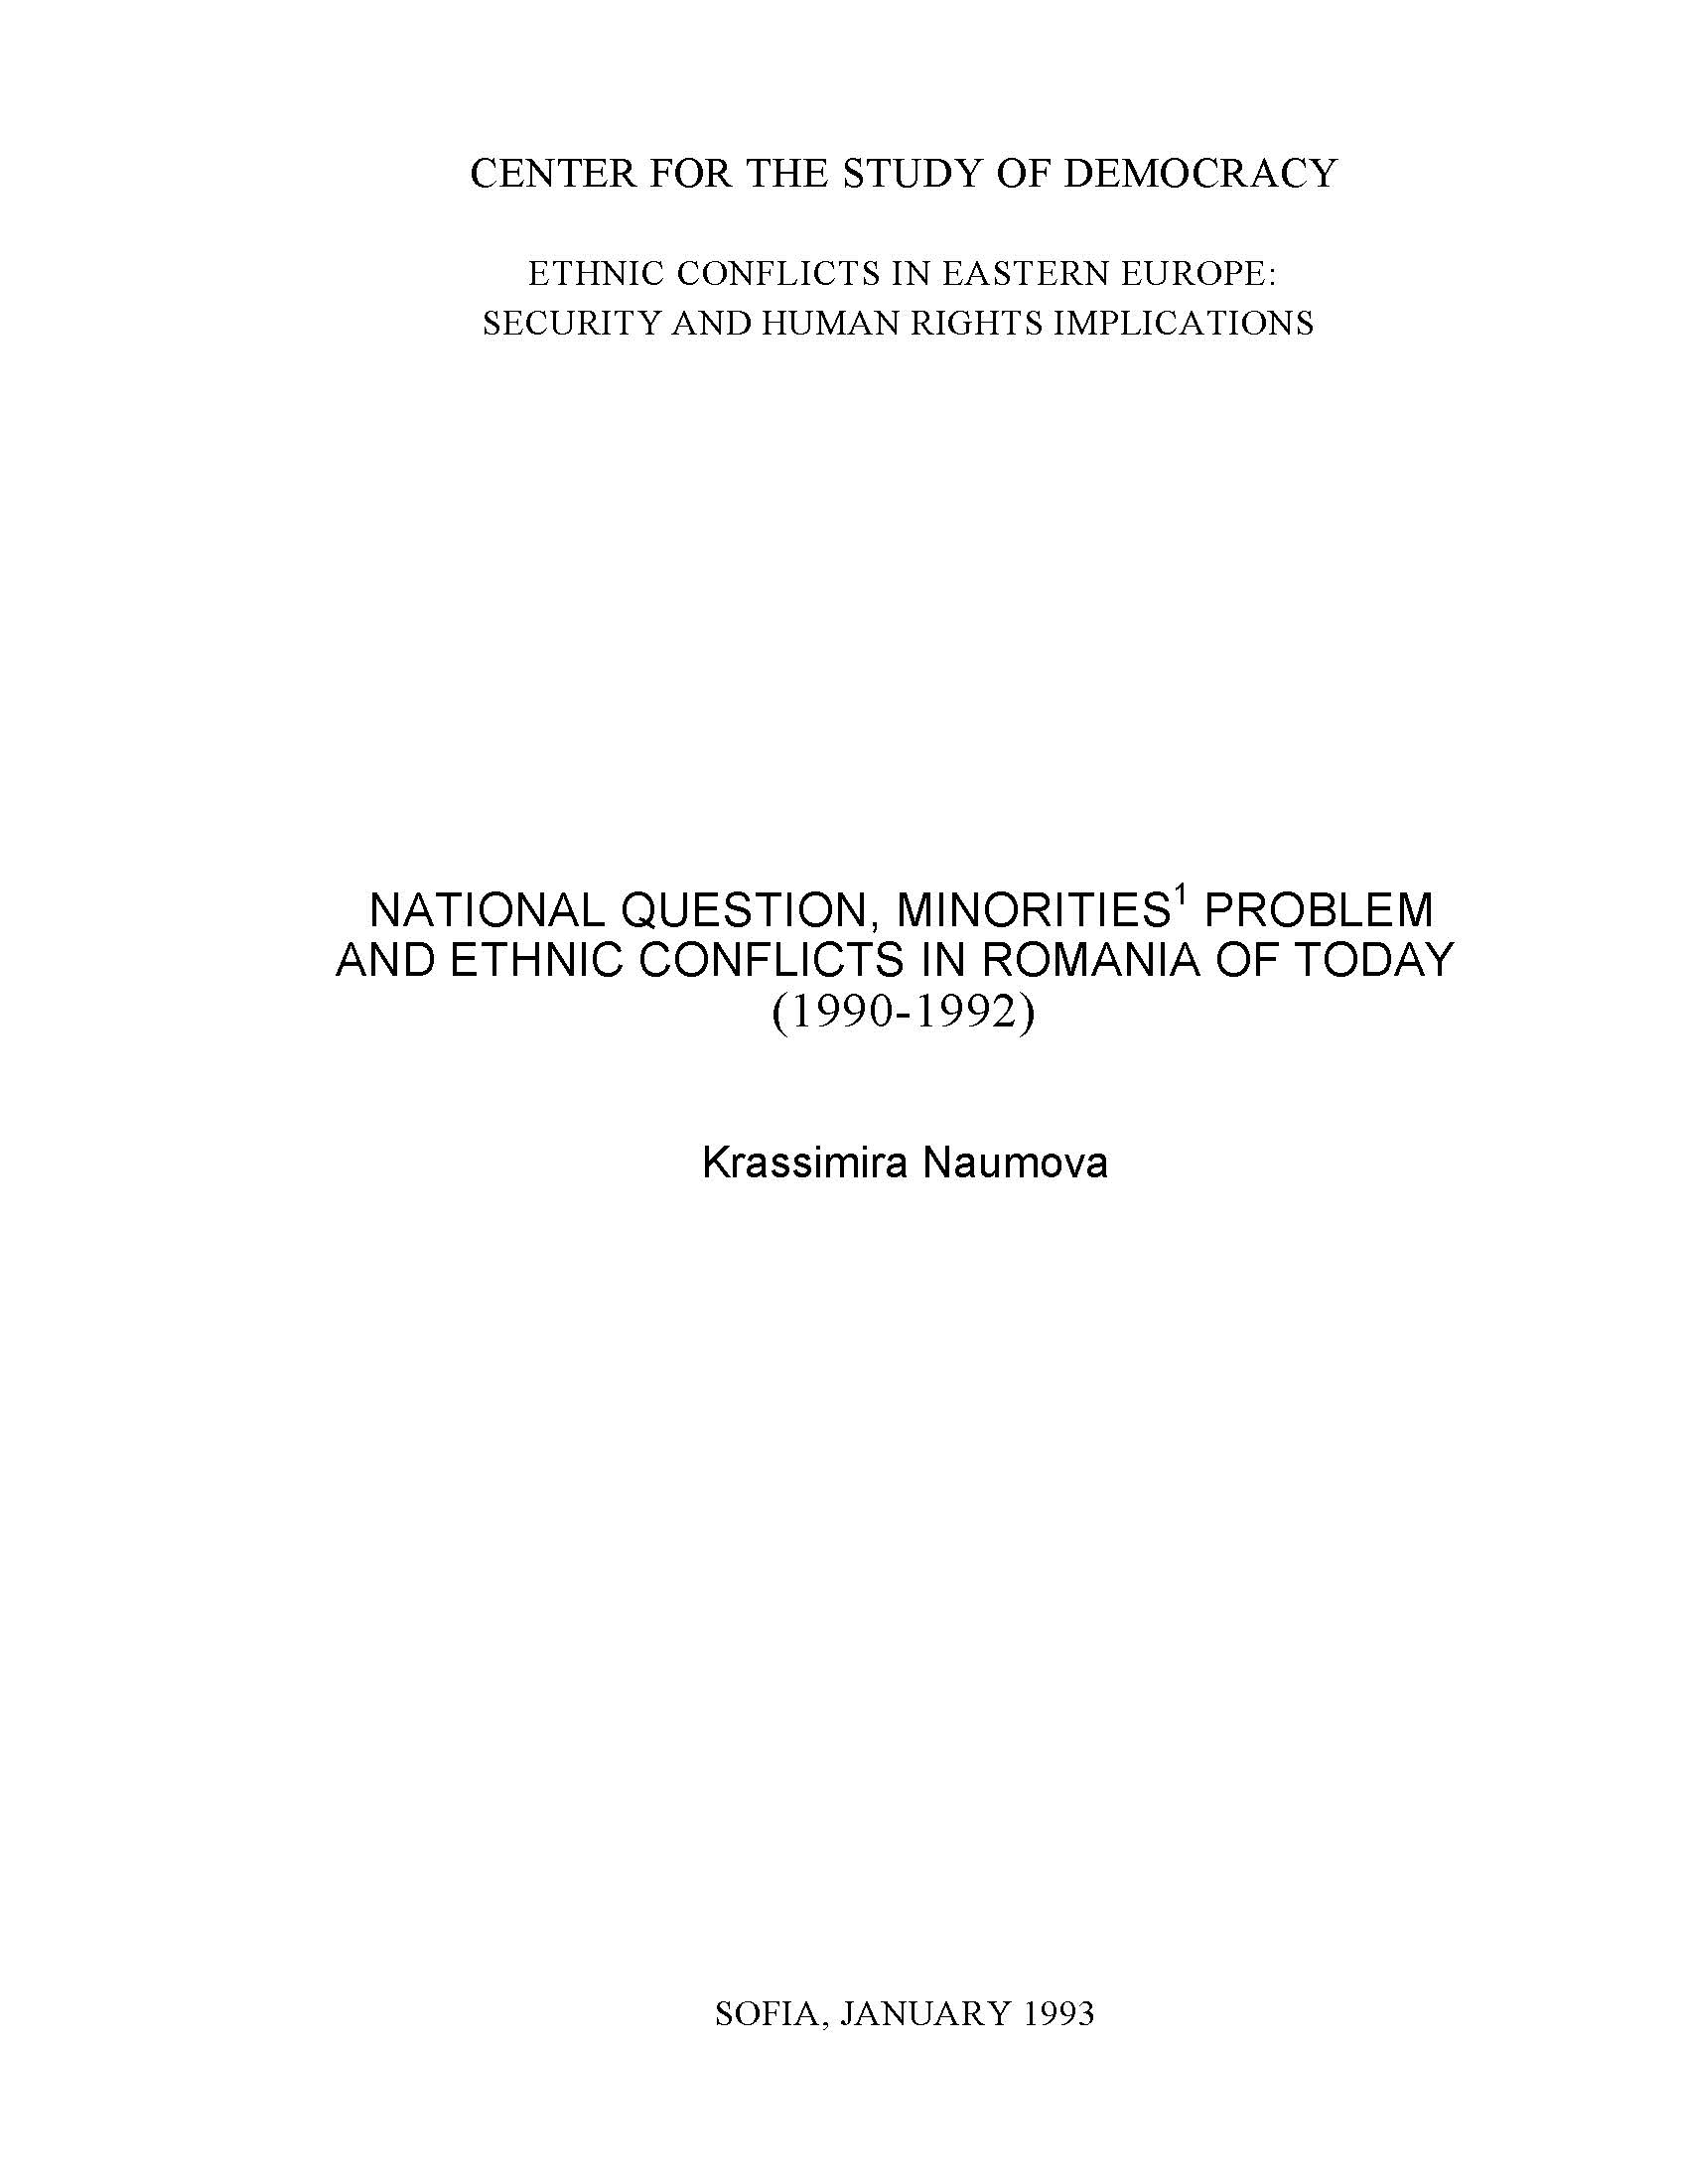 National Question, Minorities' Problem and Ethnic Conflicts in Romania of Today (1990-1992)